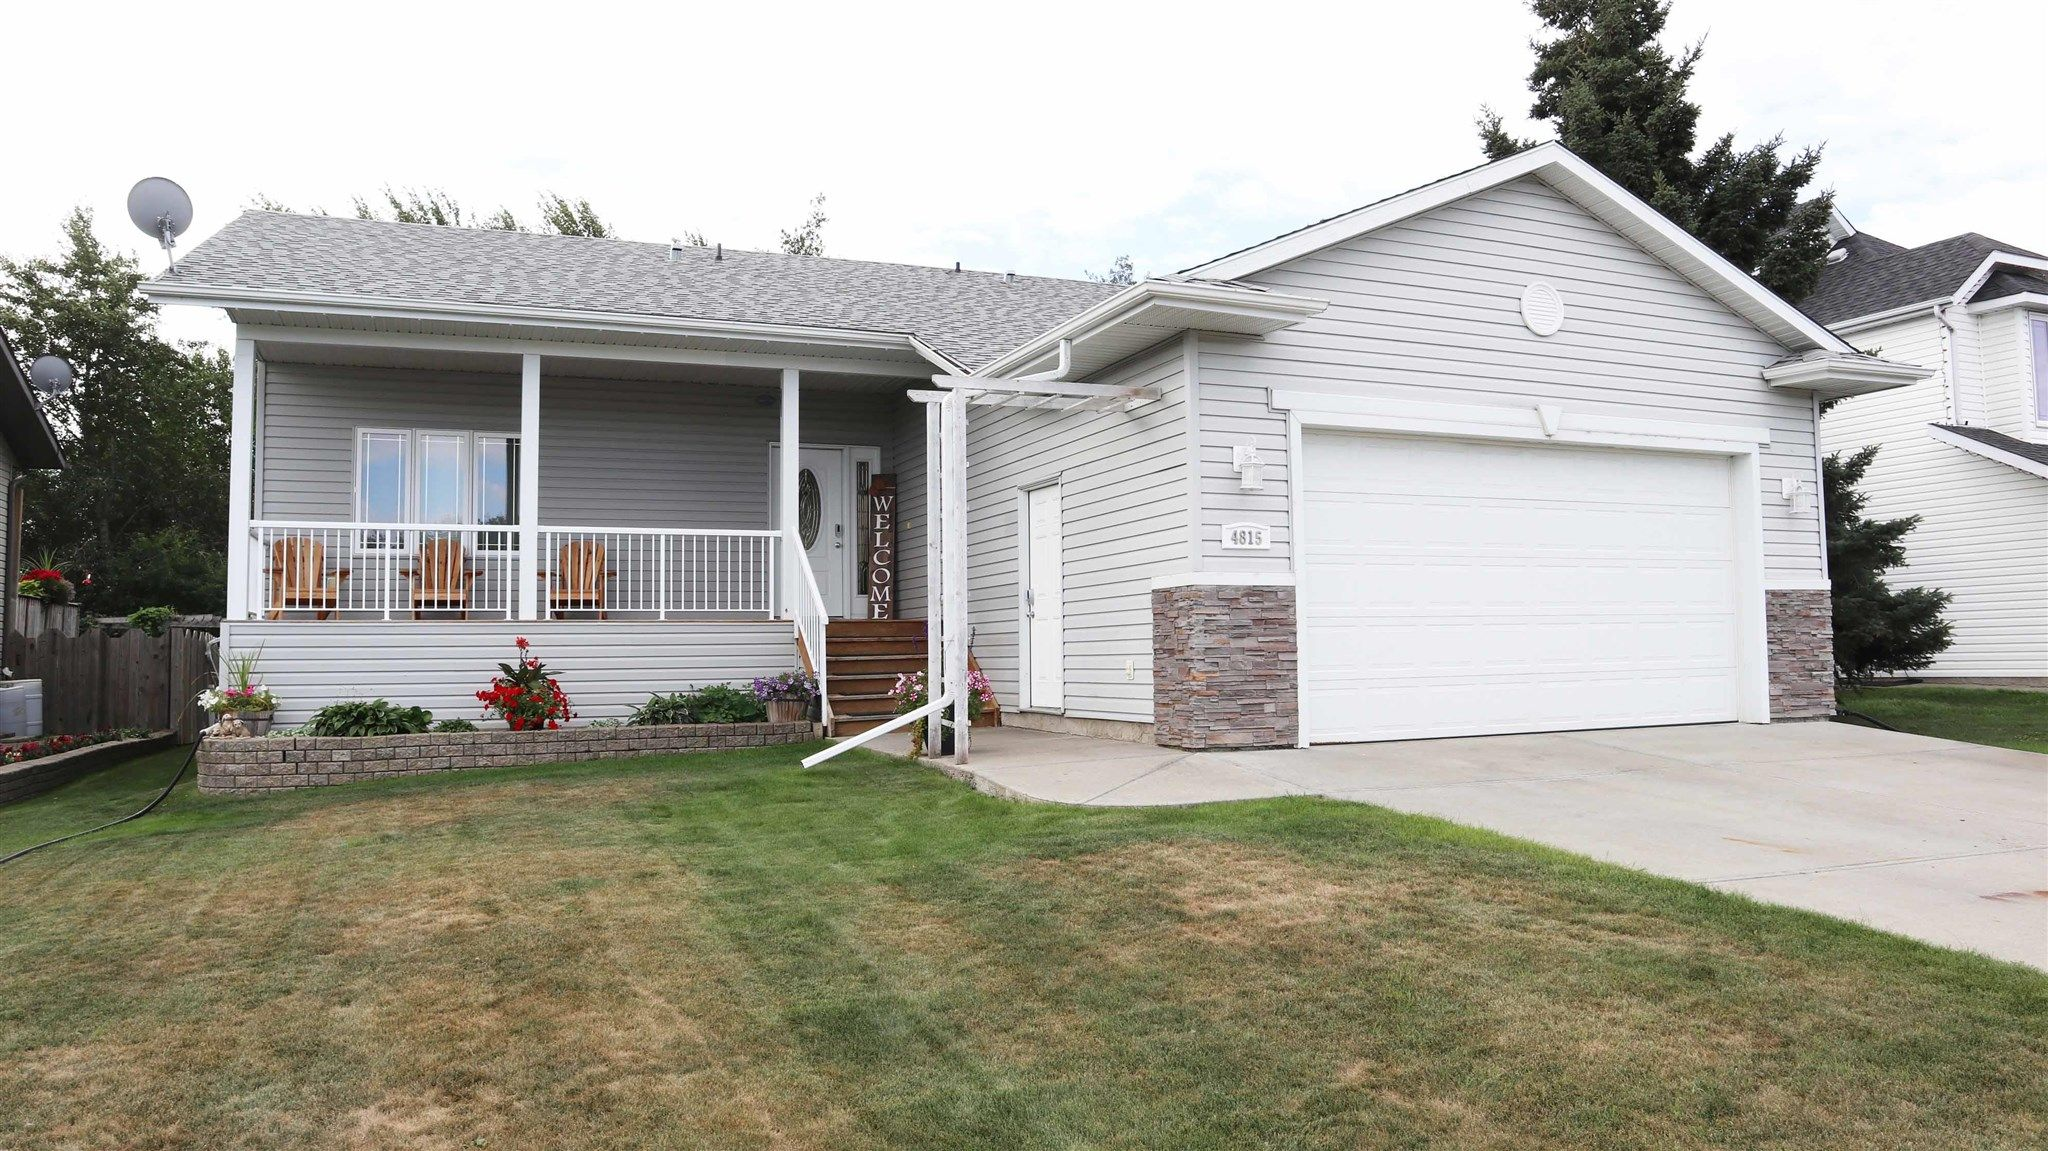 Main Photo: 4815 52 Avenue: Thorsby House for sale : MLS®# E4258238